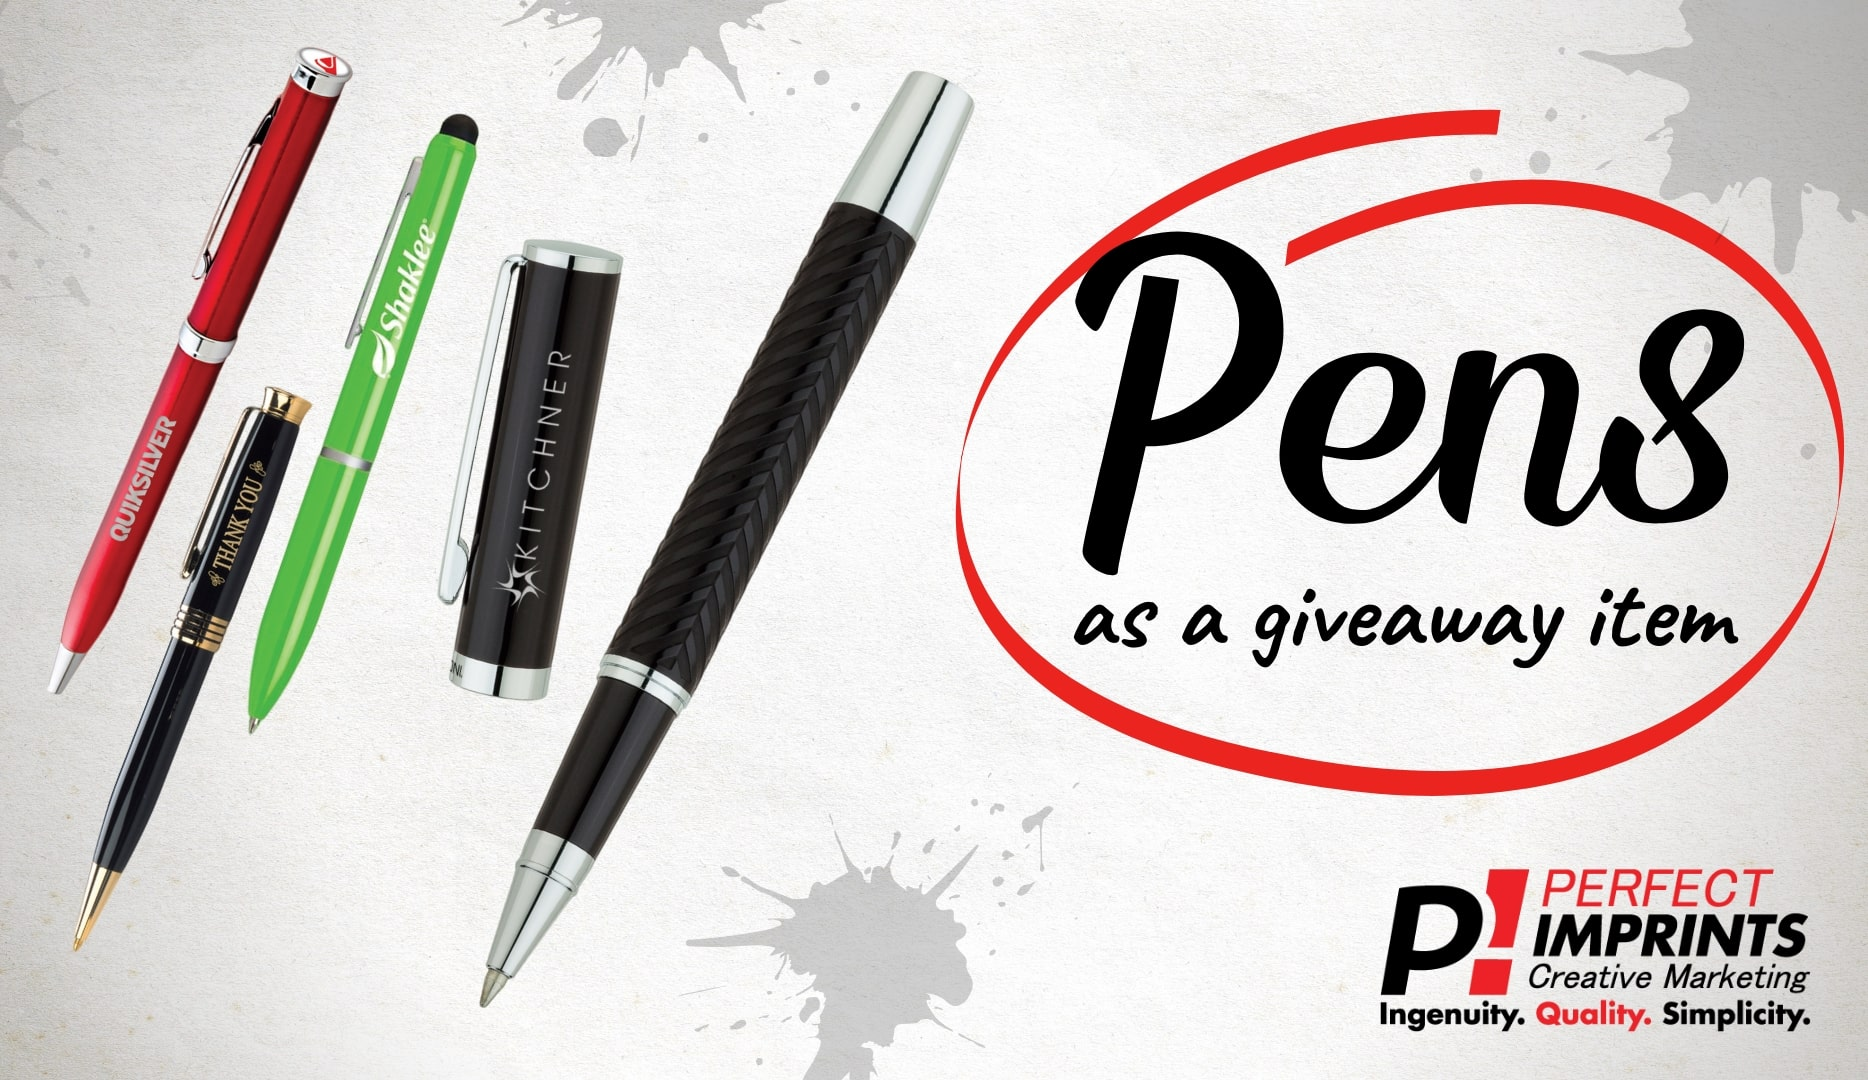 Don't let your Promotional Pen Spread Germs!